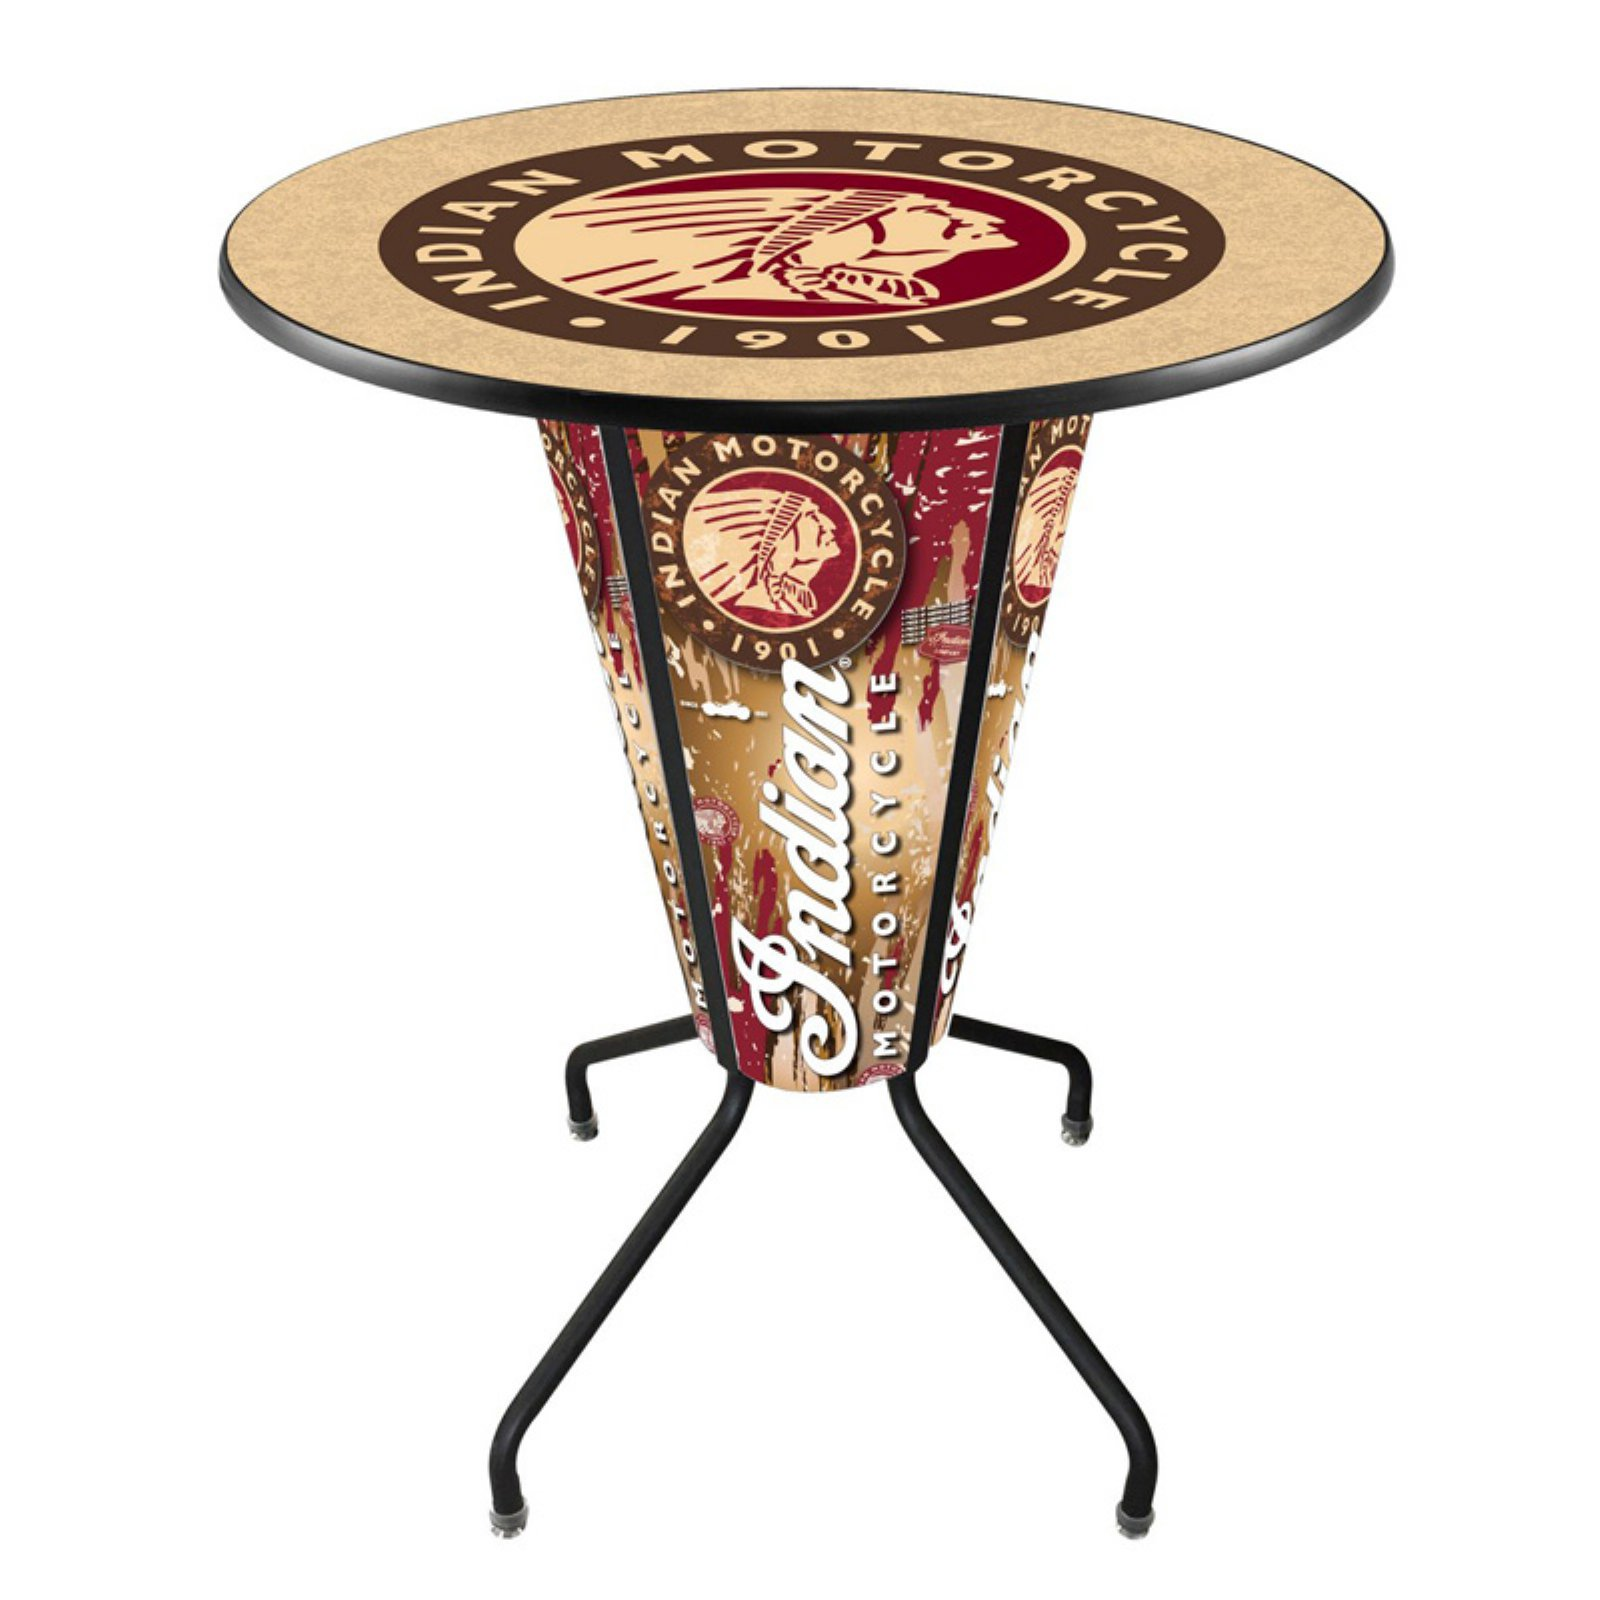 Holland Lighted Indian Motorcycle Pub Table with Logo Top